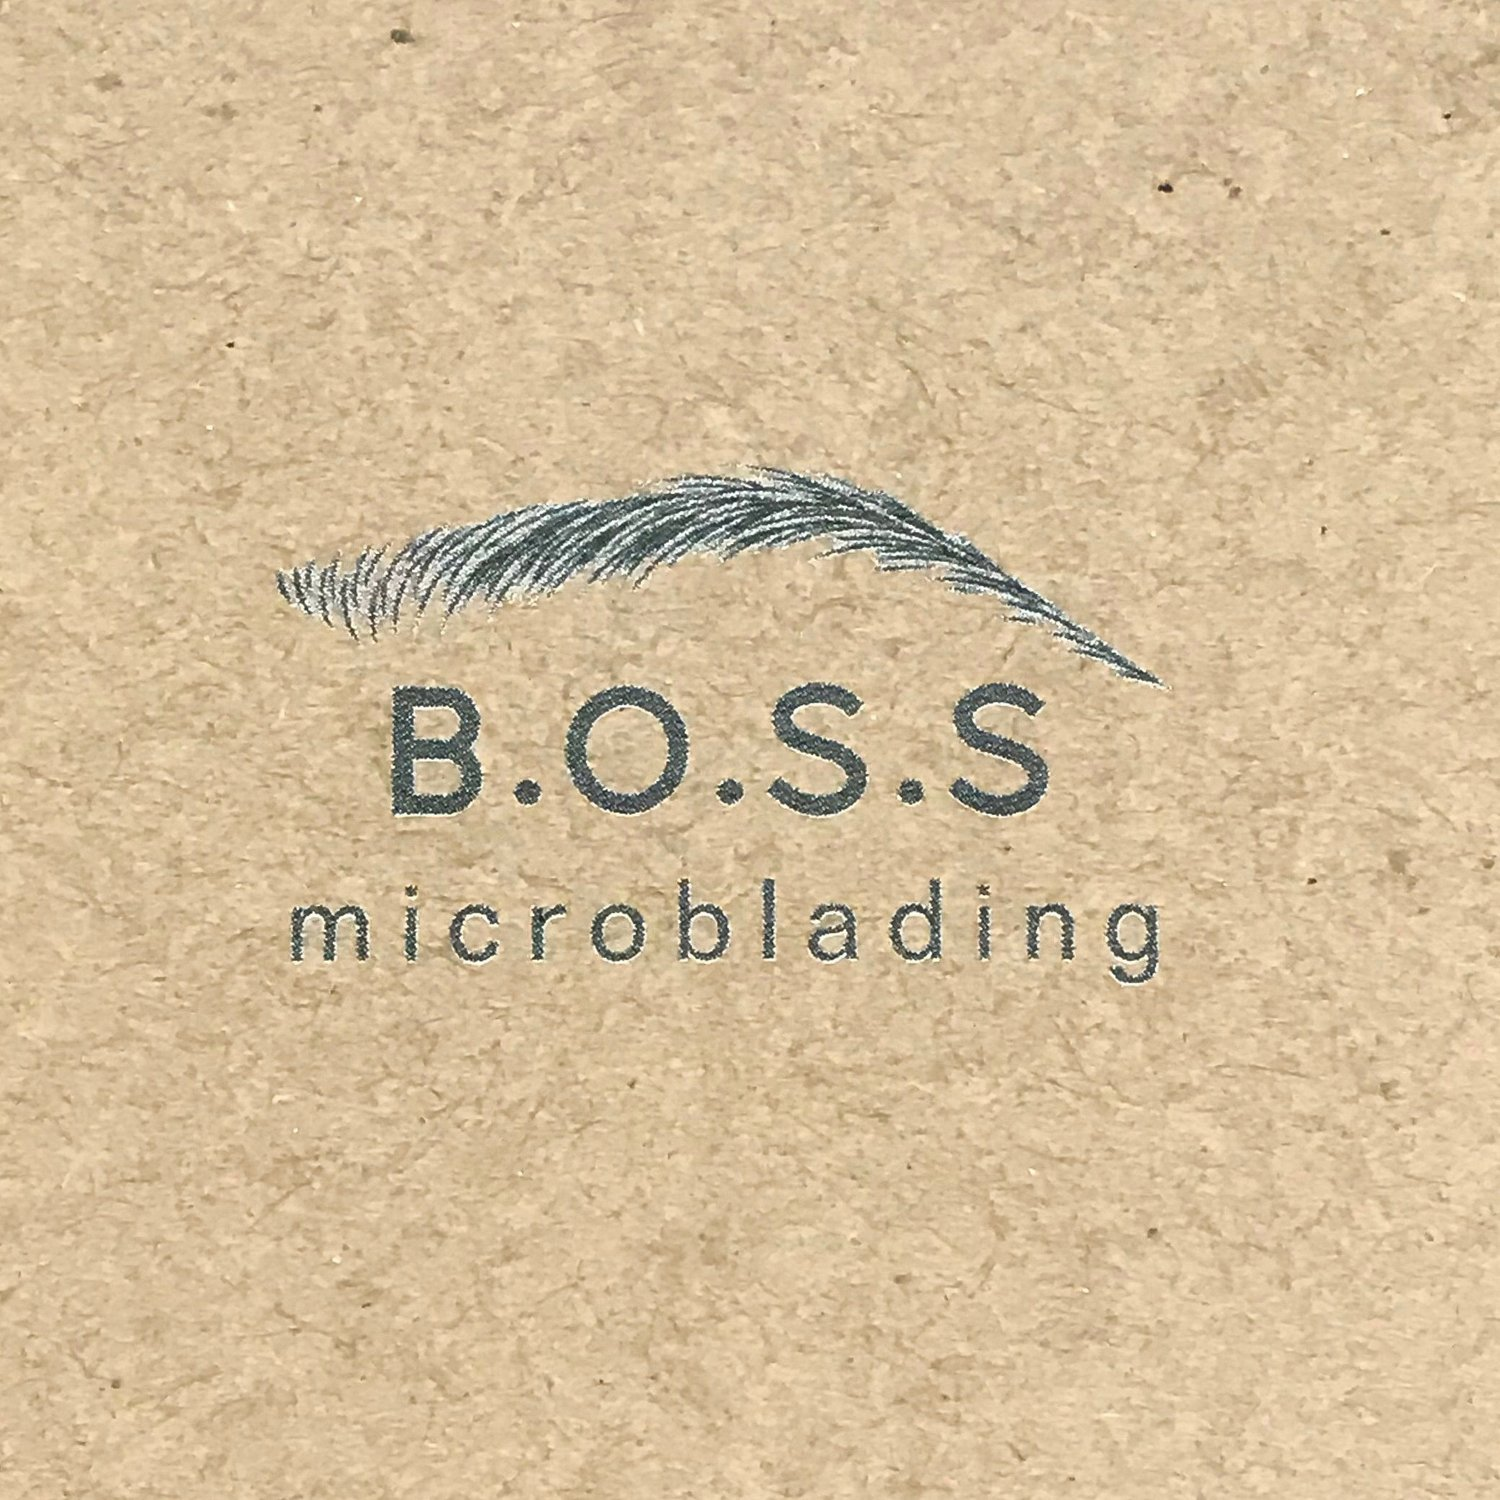 Start Here — B O S S microblading